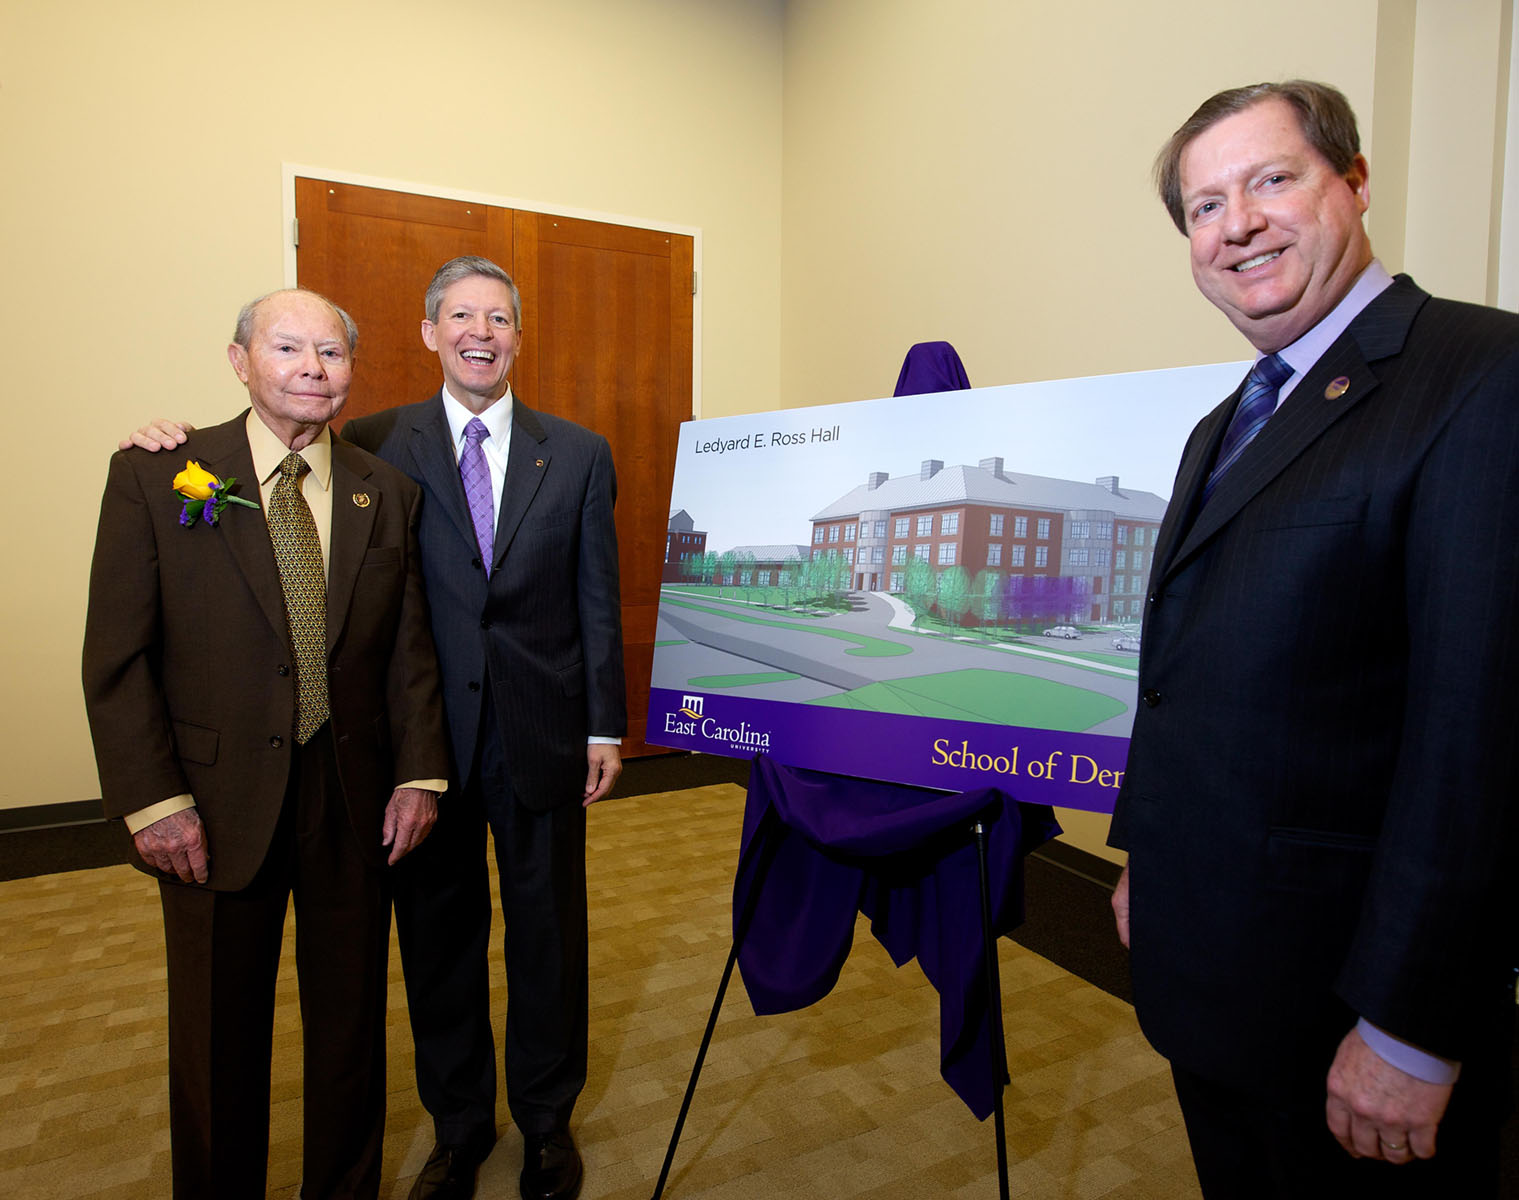 Left to right: Dr. Ledyard E. Ross, Greenville orthodontist; East Carolina University Chancellor Dr. Steve Ballard; and ECU School of Dentistry Dean Dr. James R. Hupp stand with a drawing of the School of Dentistry building, which will be named for Ross following a $4 million gift to the school. Photo by Cliff Hollis, ECU News Services.